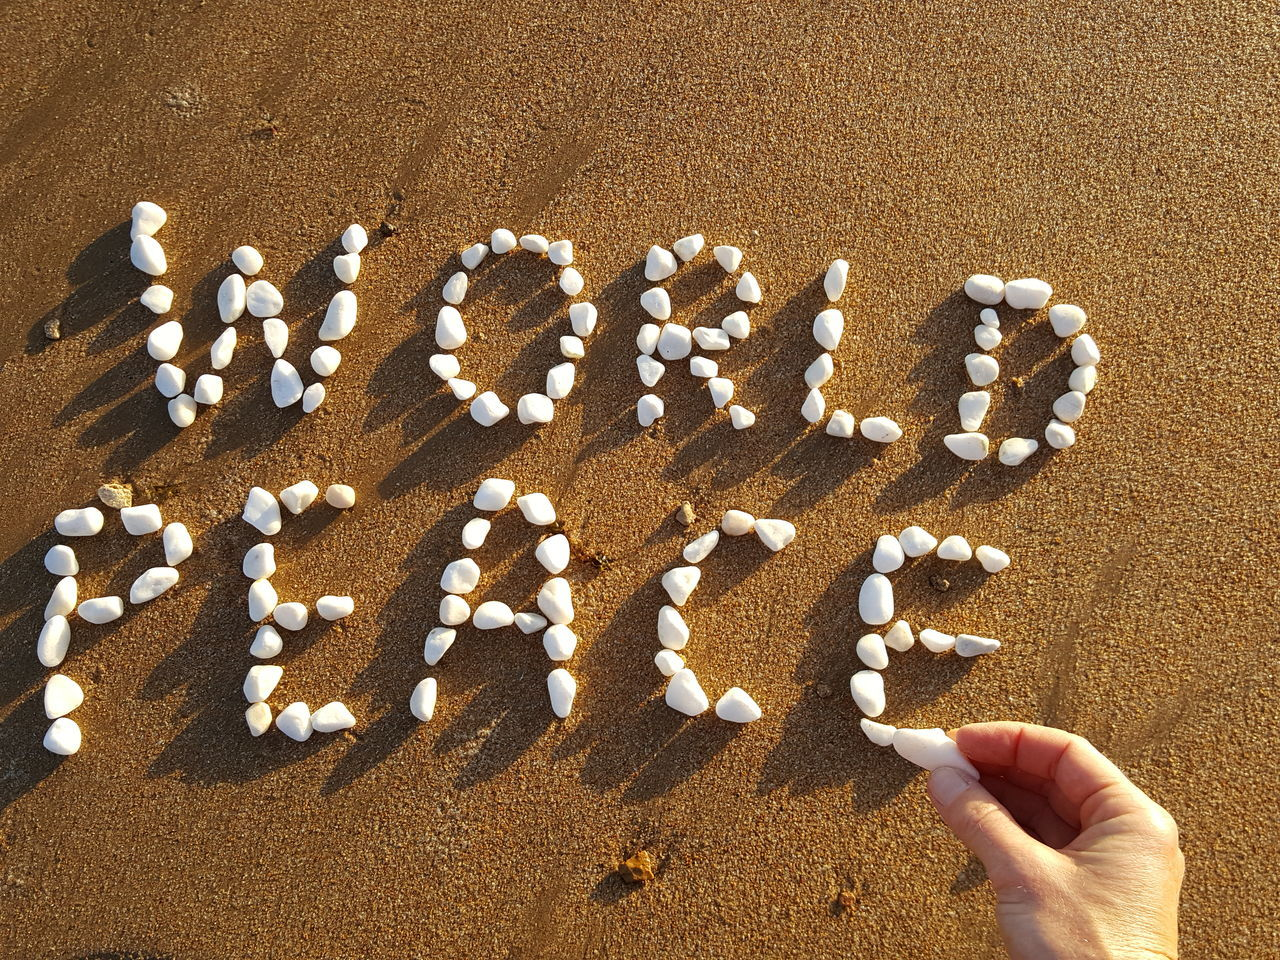 Human Hand Human Body Part Lifestyles Sand Scripture Writing Wish Wishes Peace Peace In The World World Peace World Peace Wish Words Letters Words With Stones Pebbles Pebbles On A Beach Pebbles And Sand Pebbles Pattern Words With Pebbles